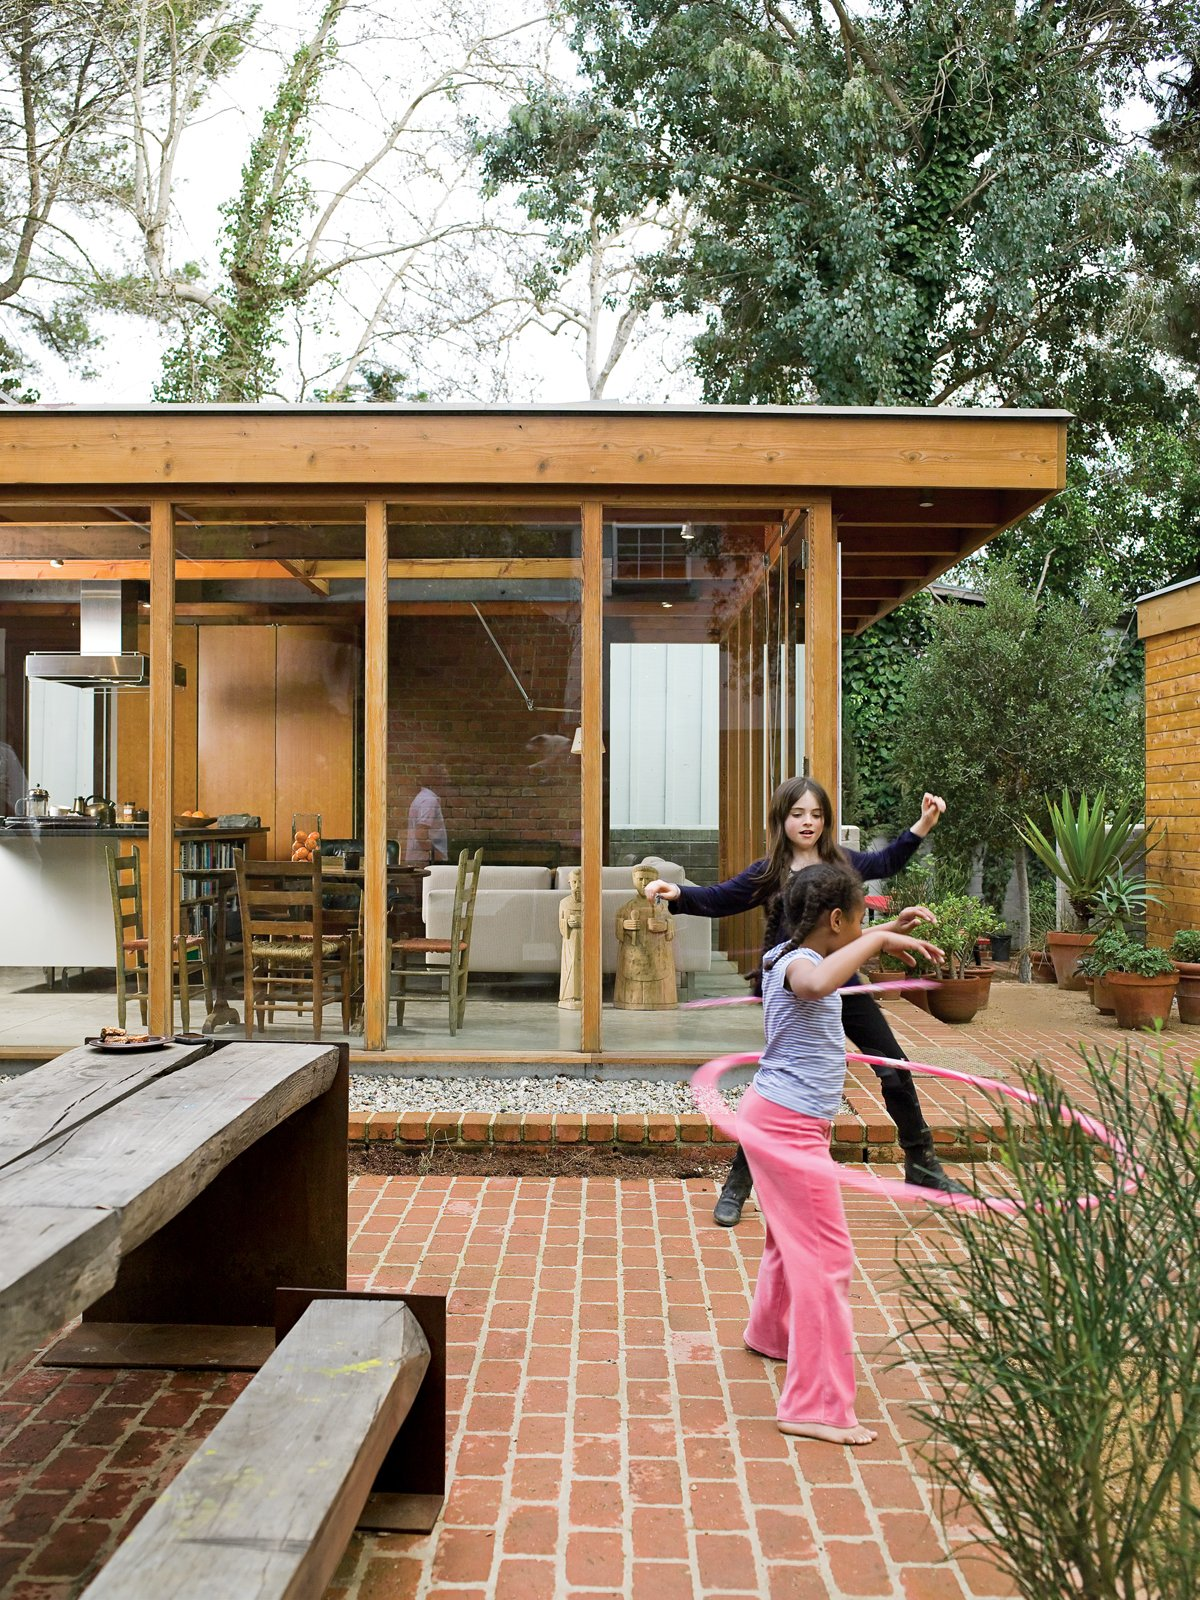 The courtyard acts like an outdoor living room, where the Arnolds' daughter, Josie, plays freely, safe from nearby traffic. The family dines here most of the year at the custom-designed wood-and-steel table. The picnic table set reappropriates the century-old eucalyptus tree that once grew on the site. Tagged: Outdoor, Large Patio, Porch, Deck, and Back Yard.  Photo 9 of 12 in Compound Addition